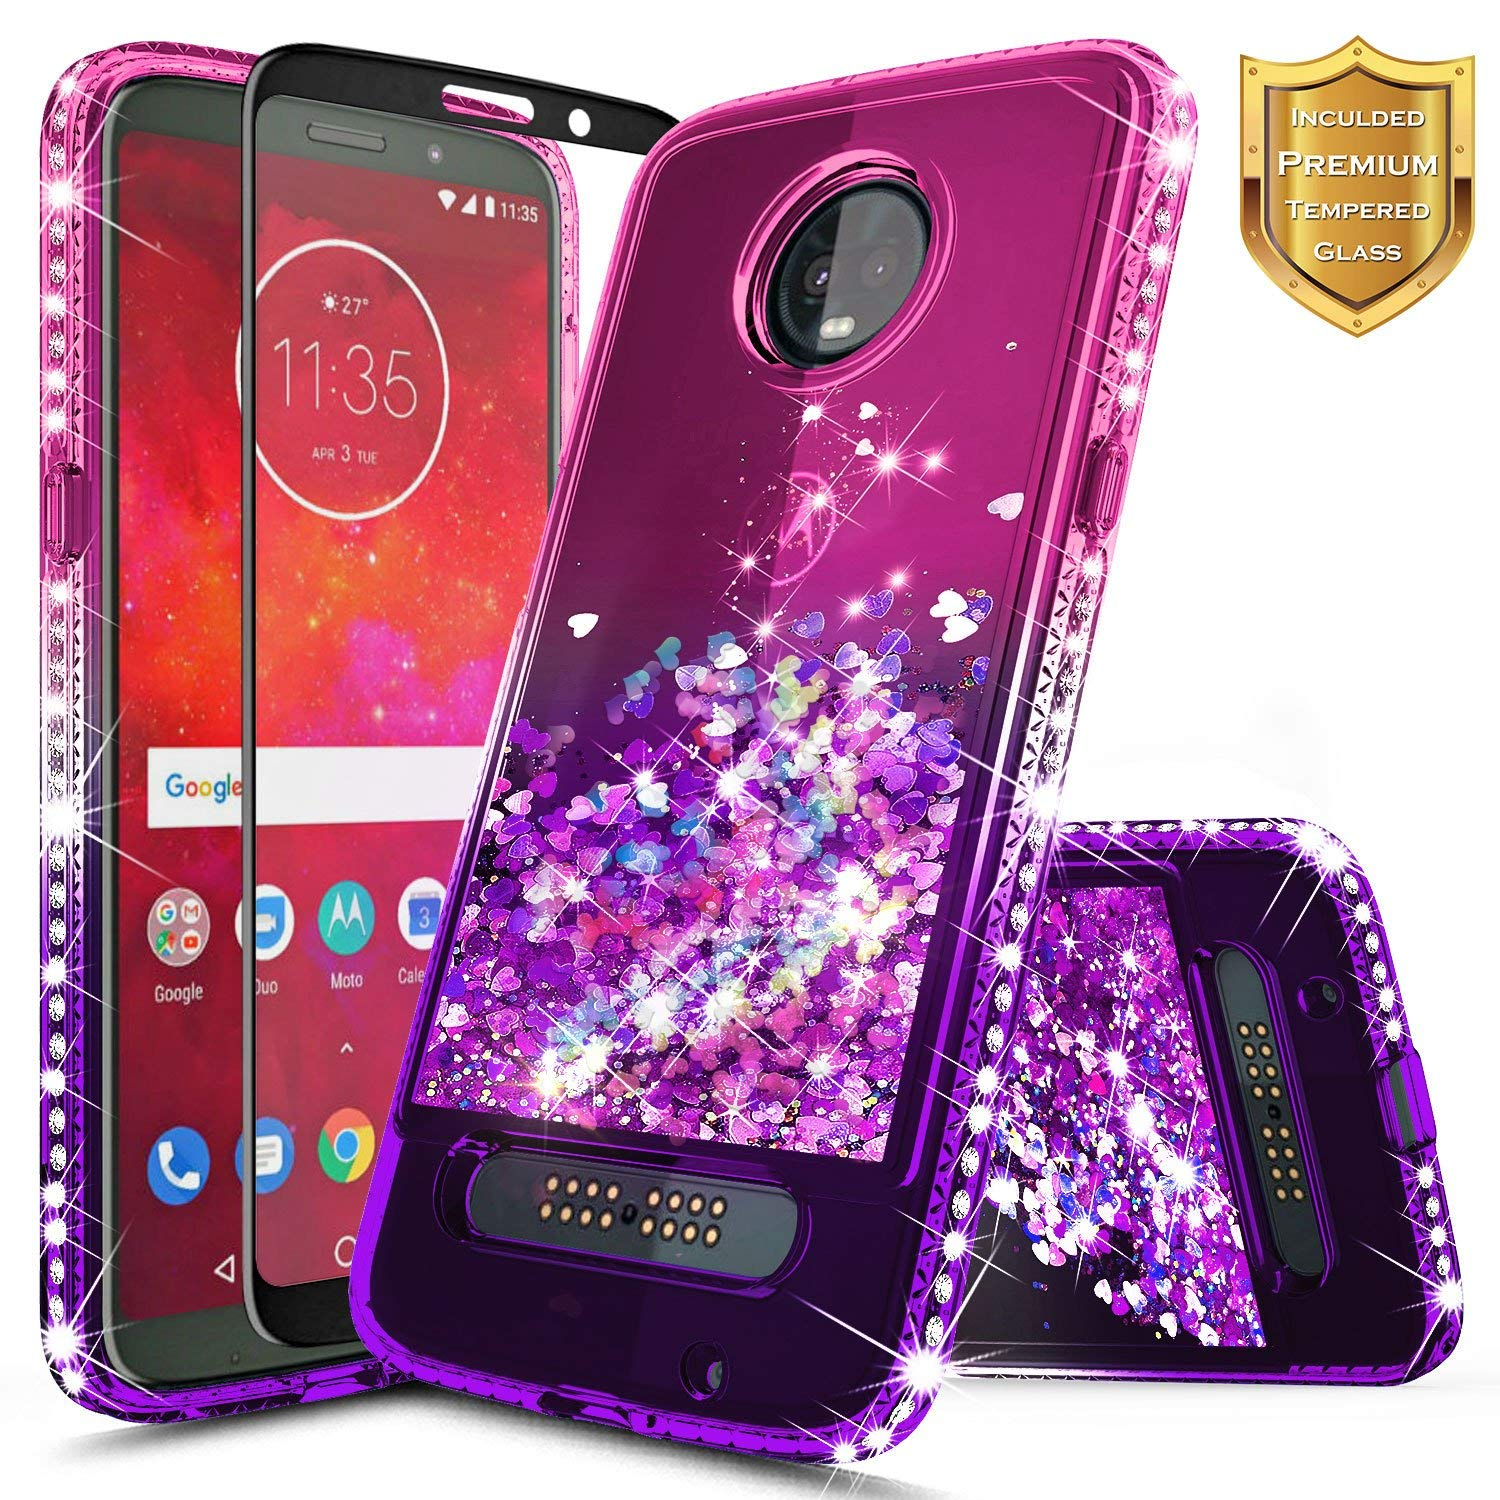 Moto Z3 Case, Moto Z3 Play Case w/[Full Cover Tempered Glass Screen Protector], NageBee Glitter Liquid Quicksand Waterfall Flowing Shiny Sparkle Bling Diamond Cute Case -Pink/Purple